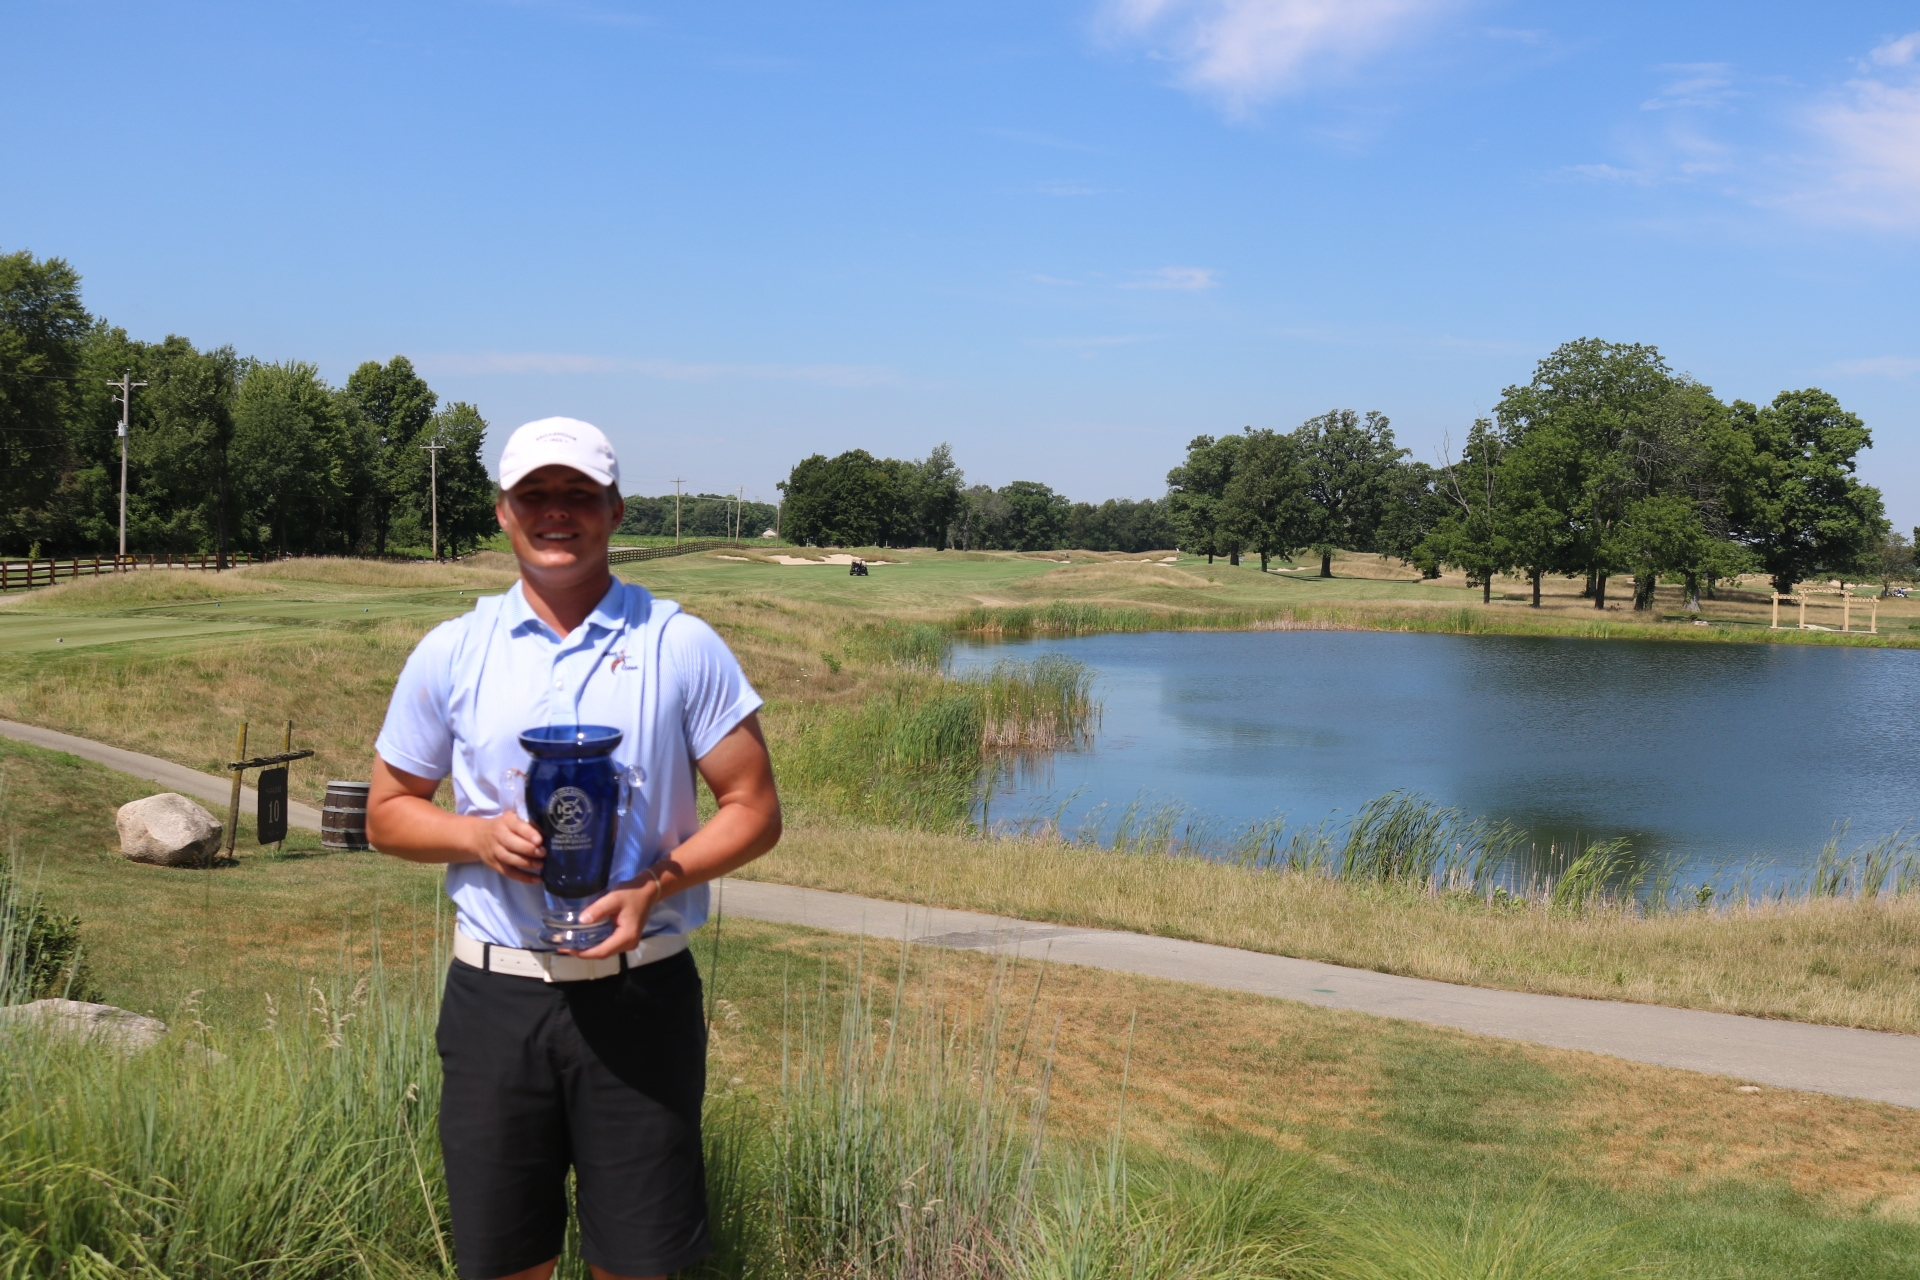 Austin Crowder survives 20 holes to win IGA Match Play Championship